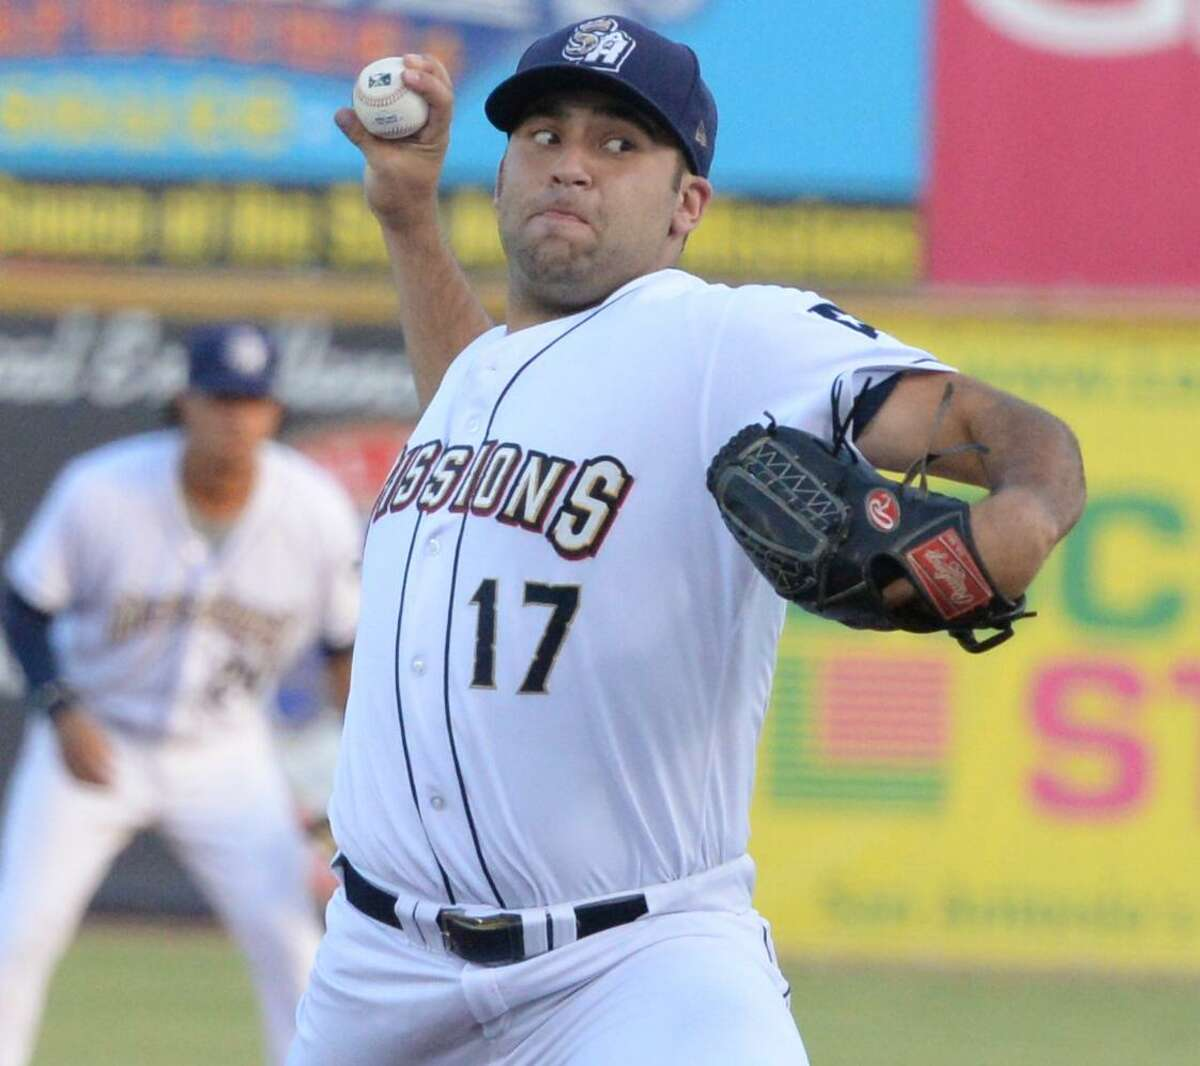 Missions pitcher Brett Kennedy, who lead the Texas League in victories with 13, in action during the 2017 season in which the team won both halves.